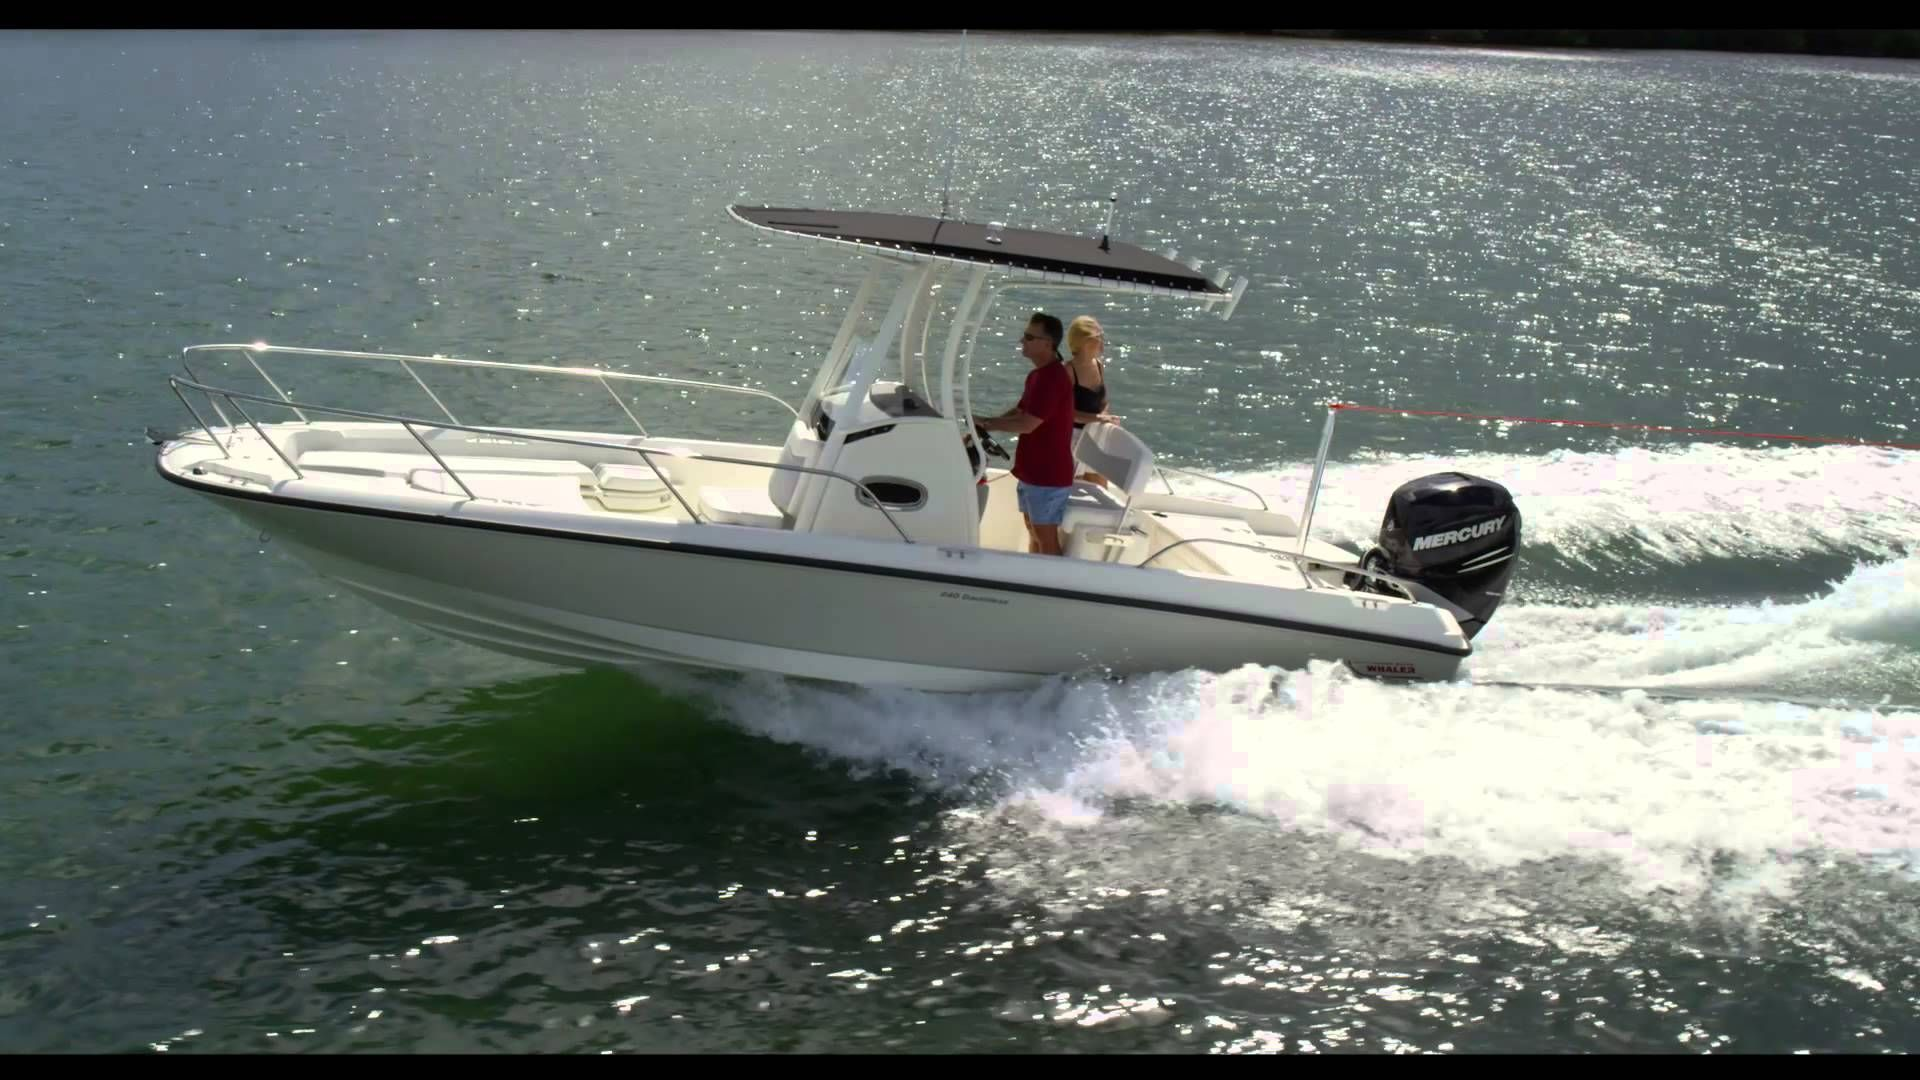 Watersports Check Relaxing Cruises Check Fun Filled Days With Family And Friends Check For All Of Your Pleasure Boating Nee Boat Dauntless Boston Whaler